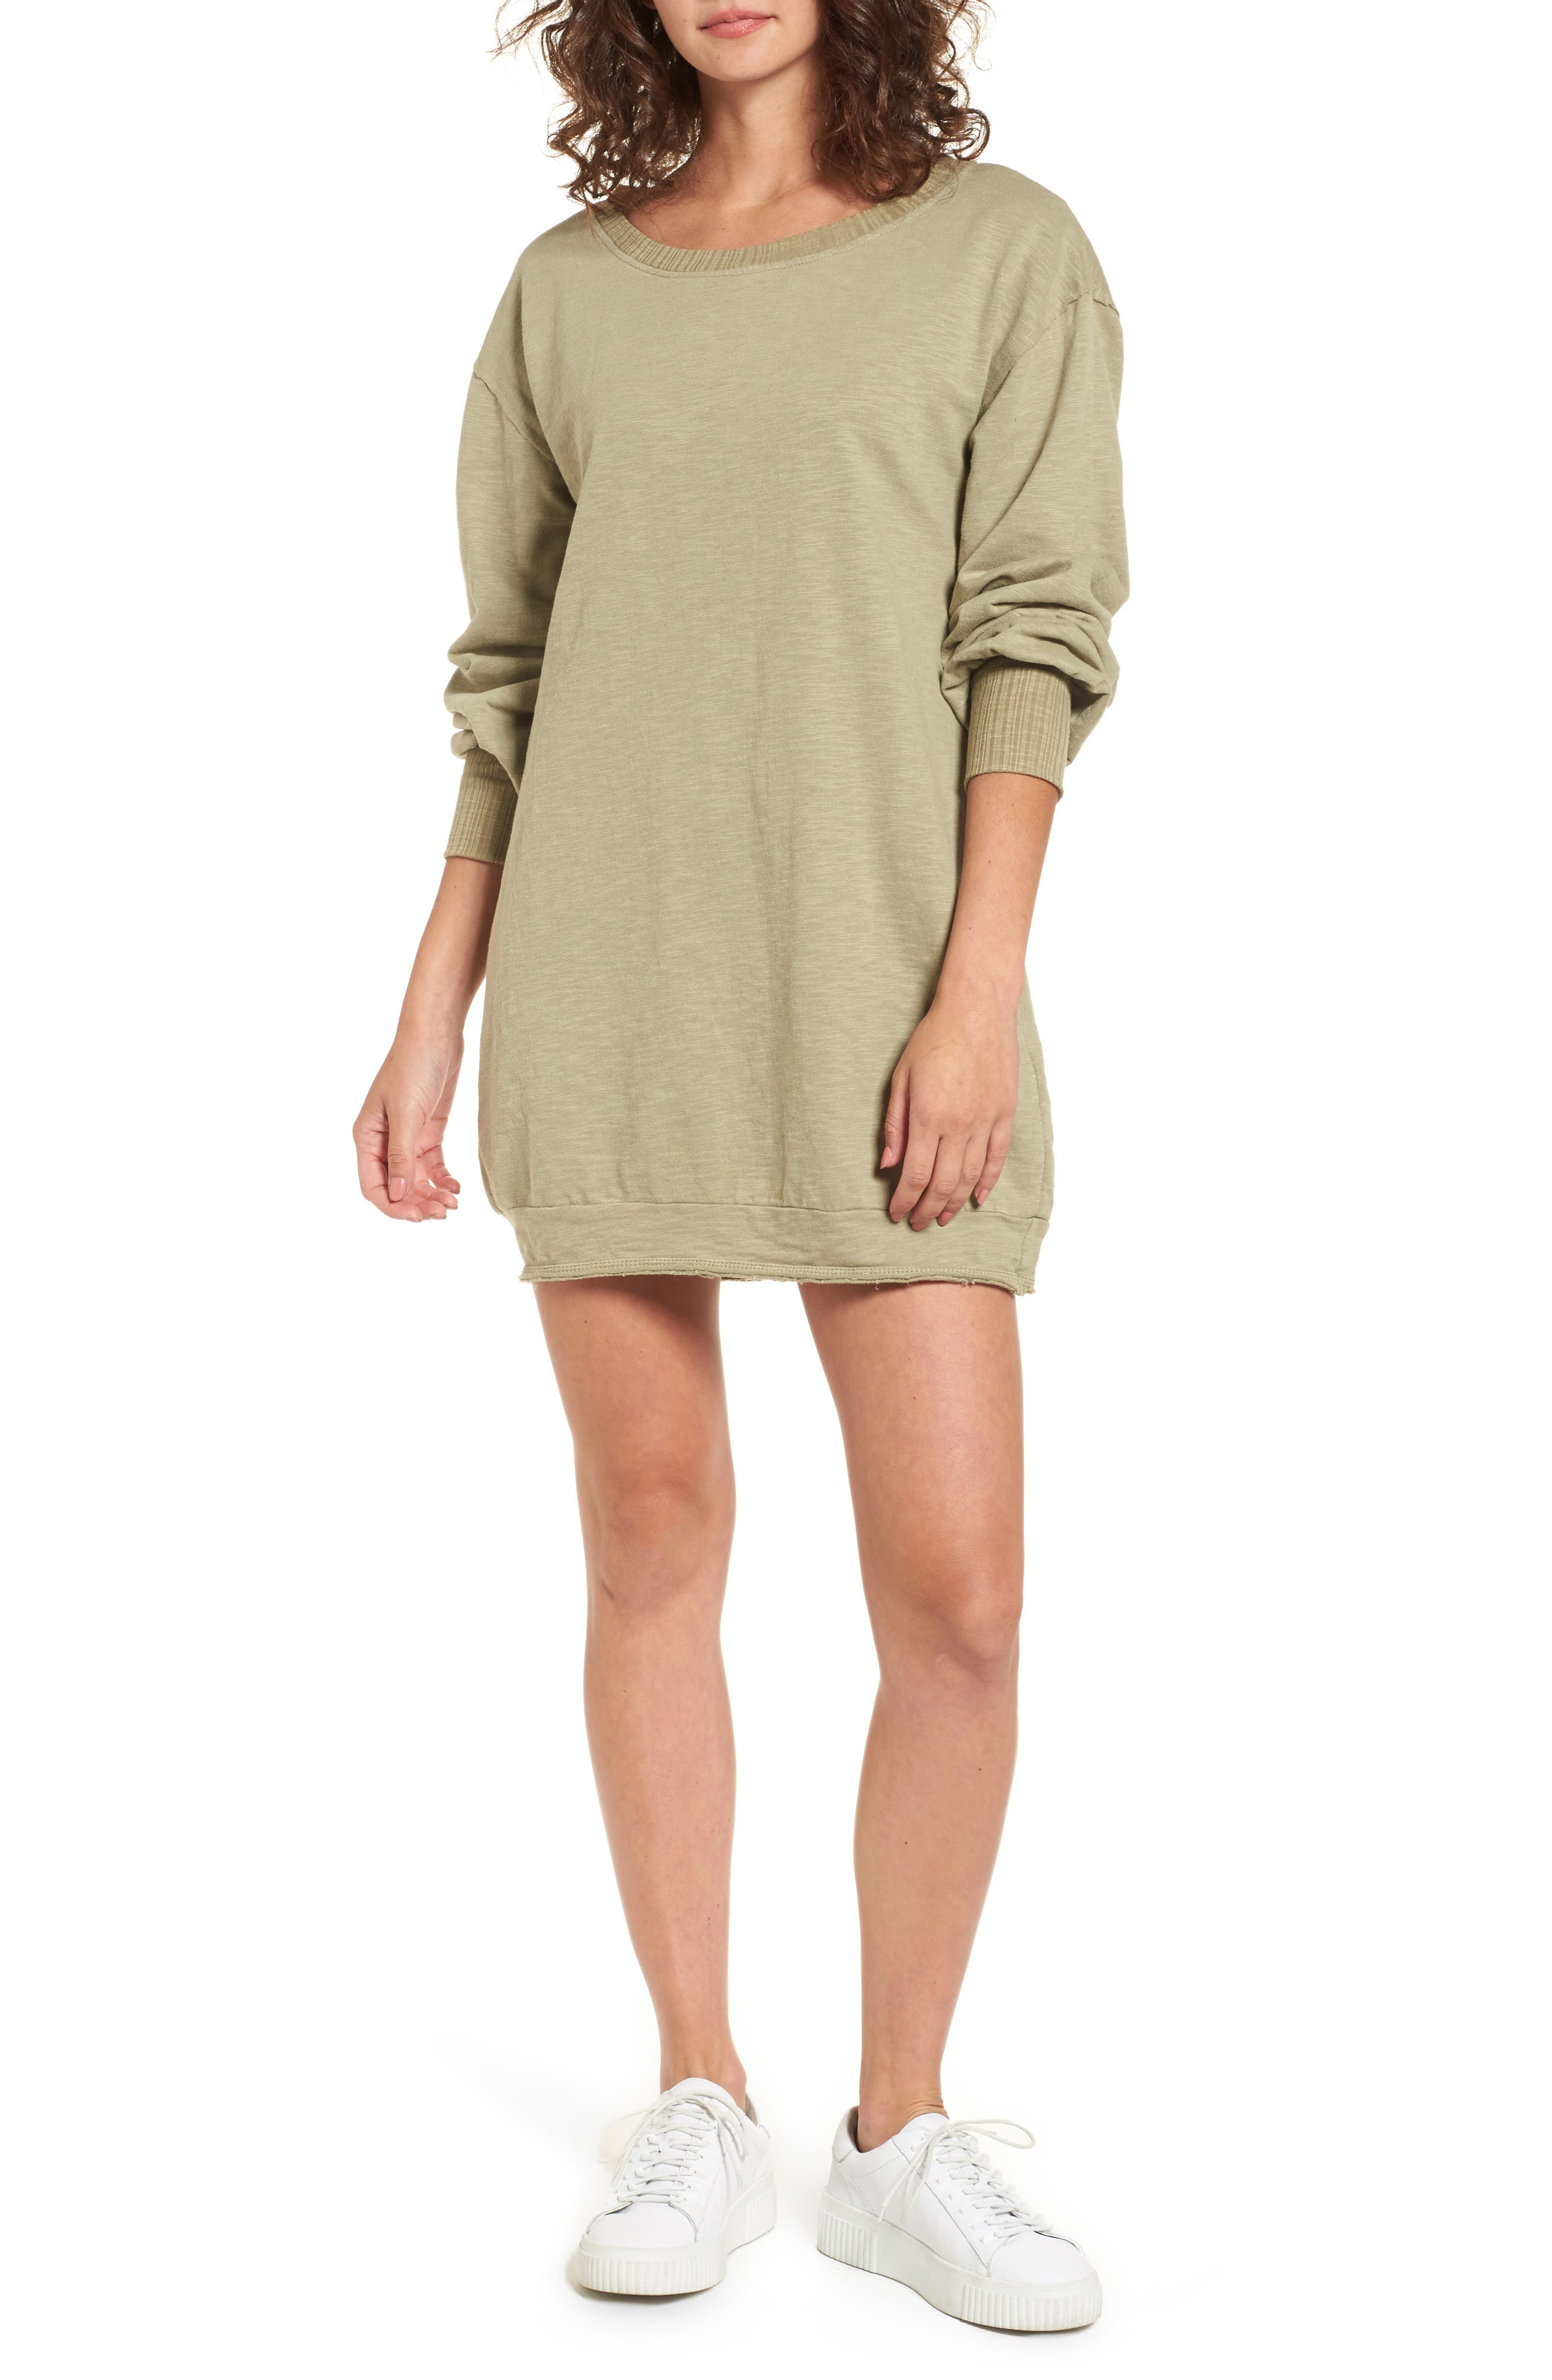 Mountains Fade Sweatshirt Dress,                             Main thumbnail 1, color,                             Sage